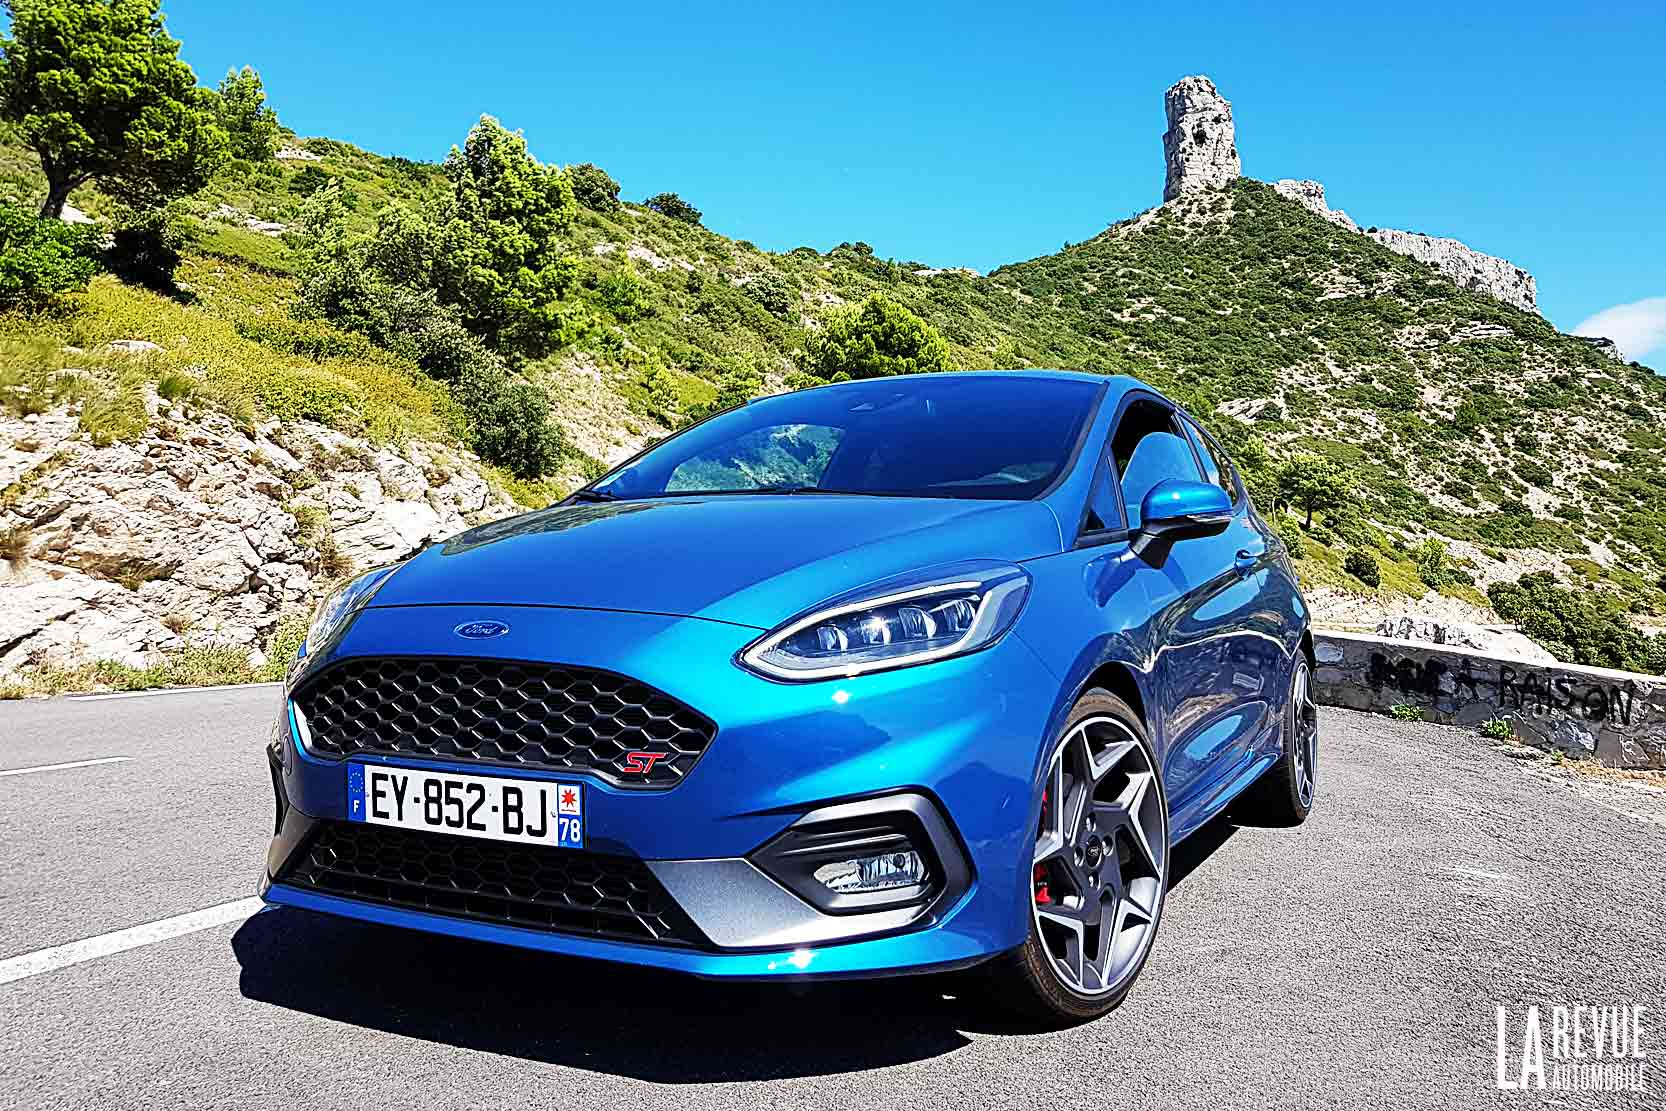 Exterieur_Ford-Fiesta-ST-1.5-Turbo_5